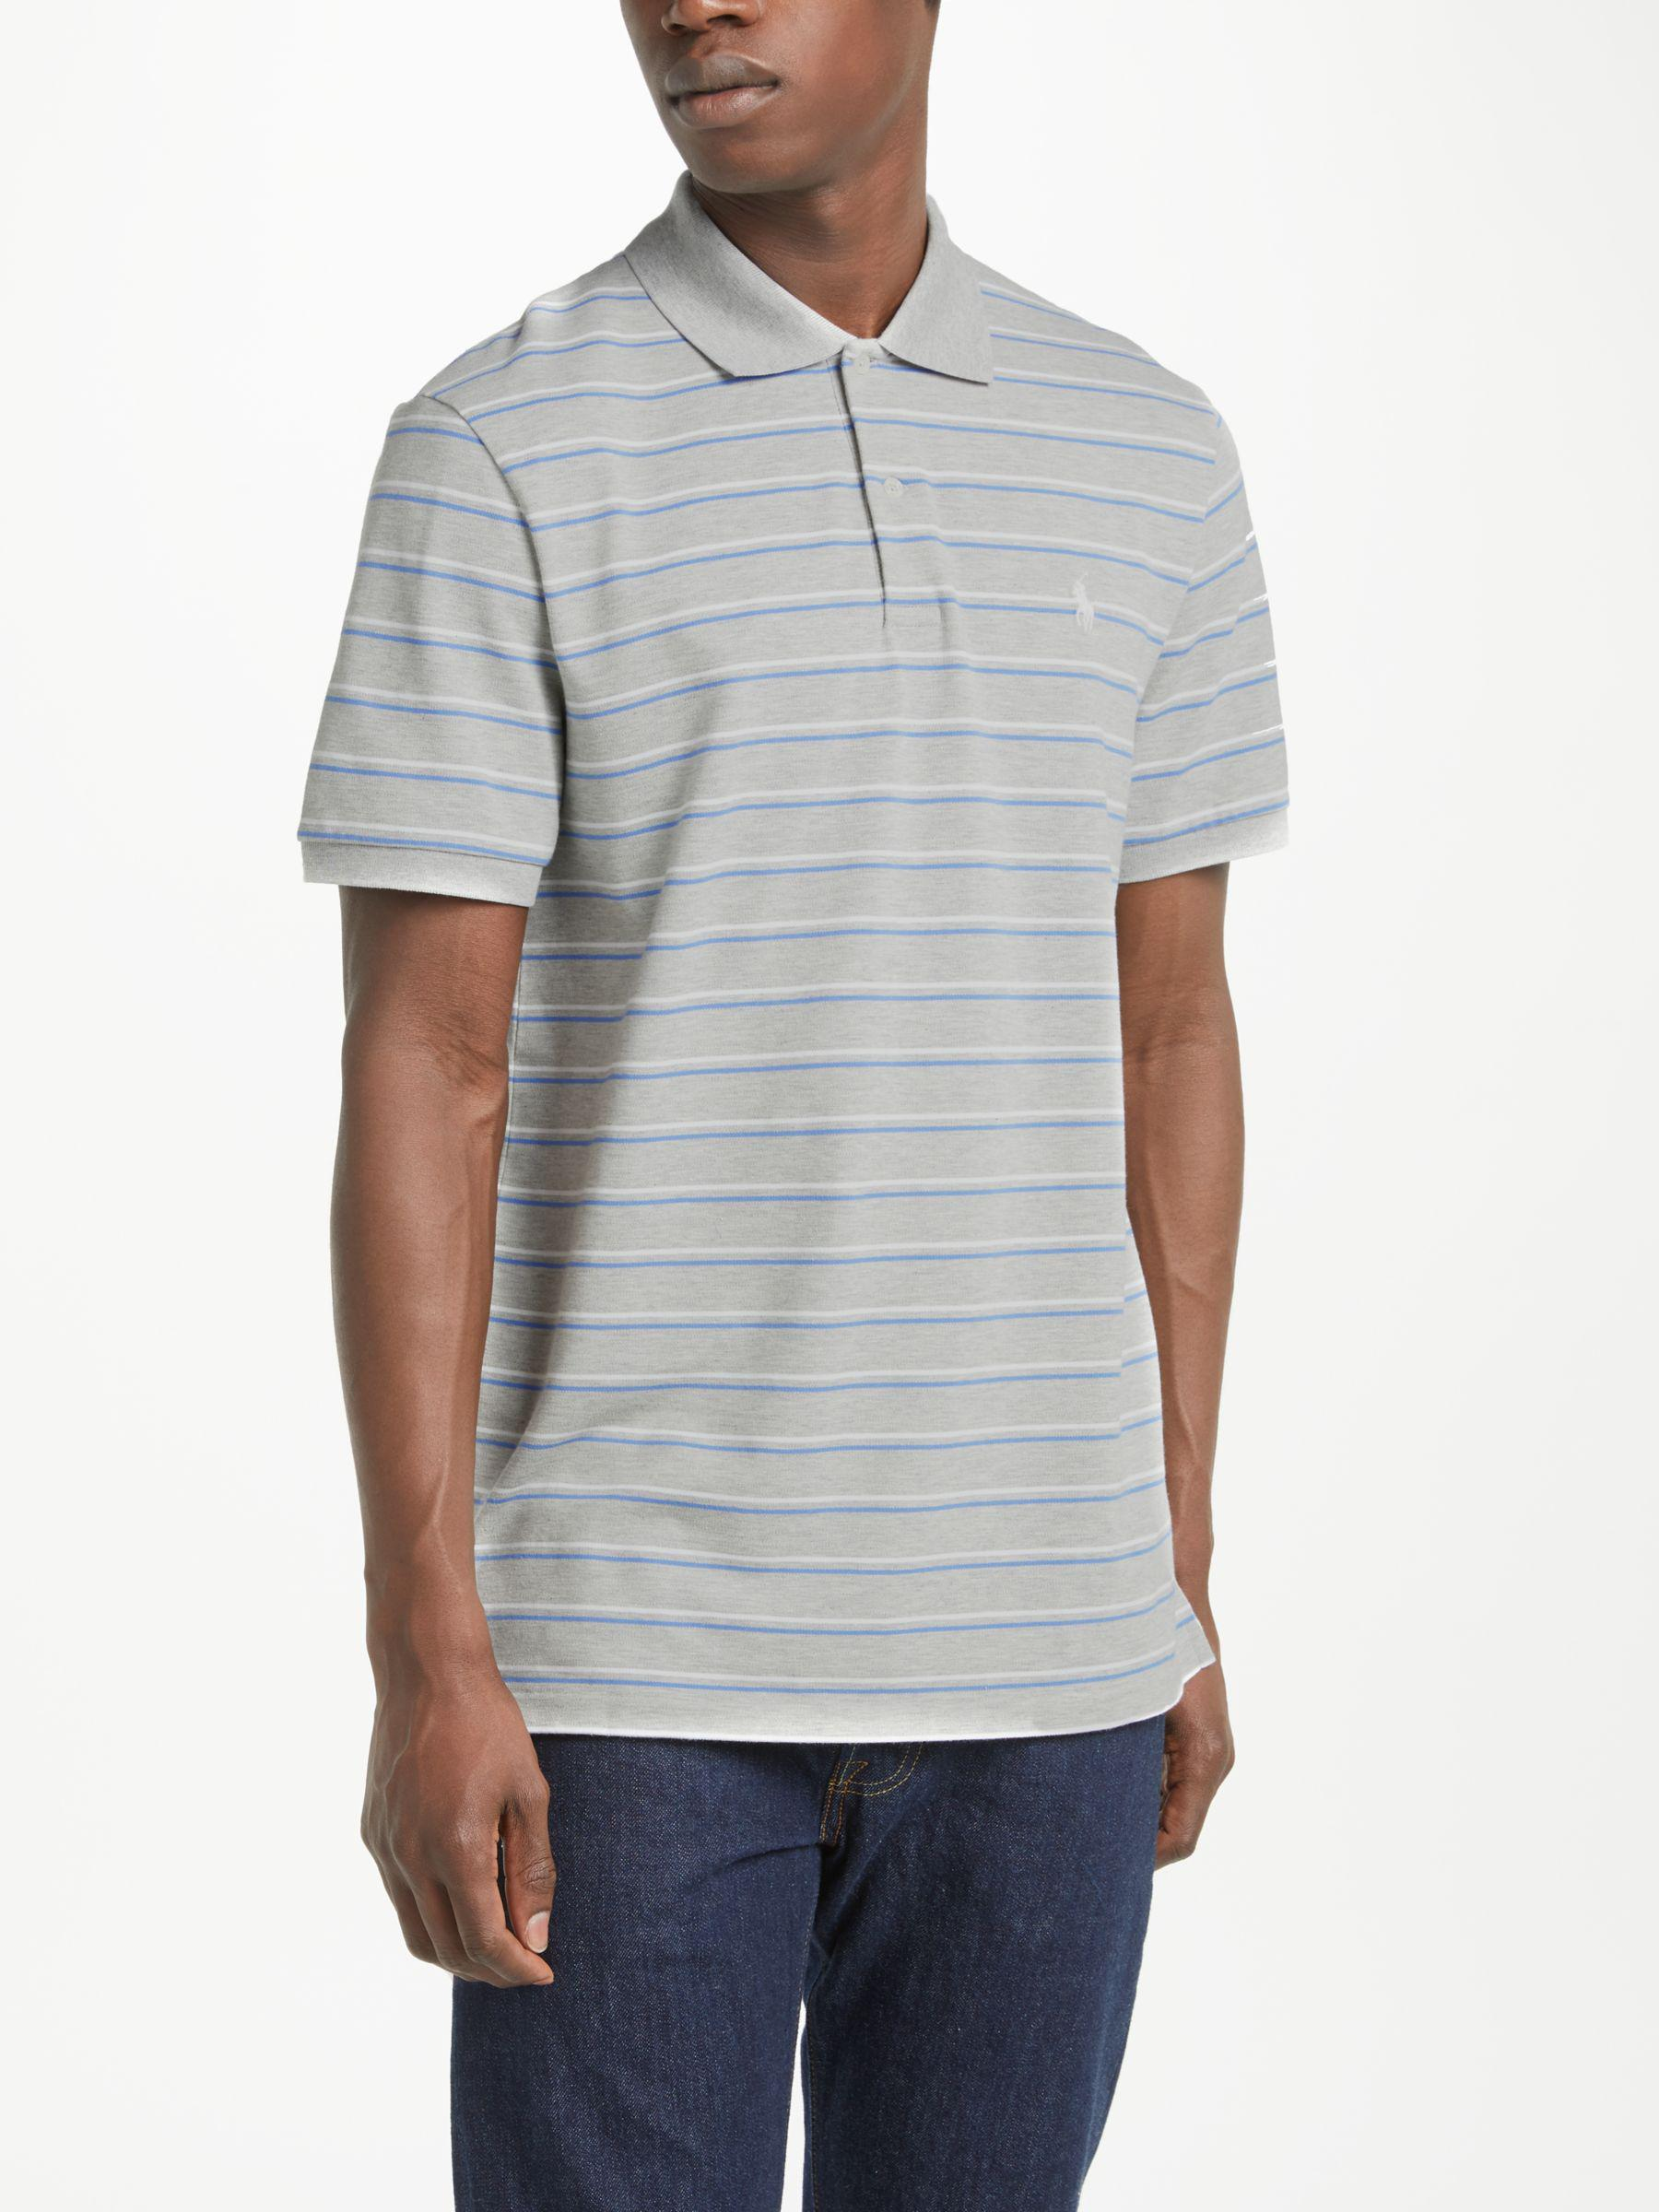 859eecce57ba3f Ralph Lauren Polo Golf By Pro-fit Stripe Polo Shirt for Men - Lyst